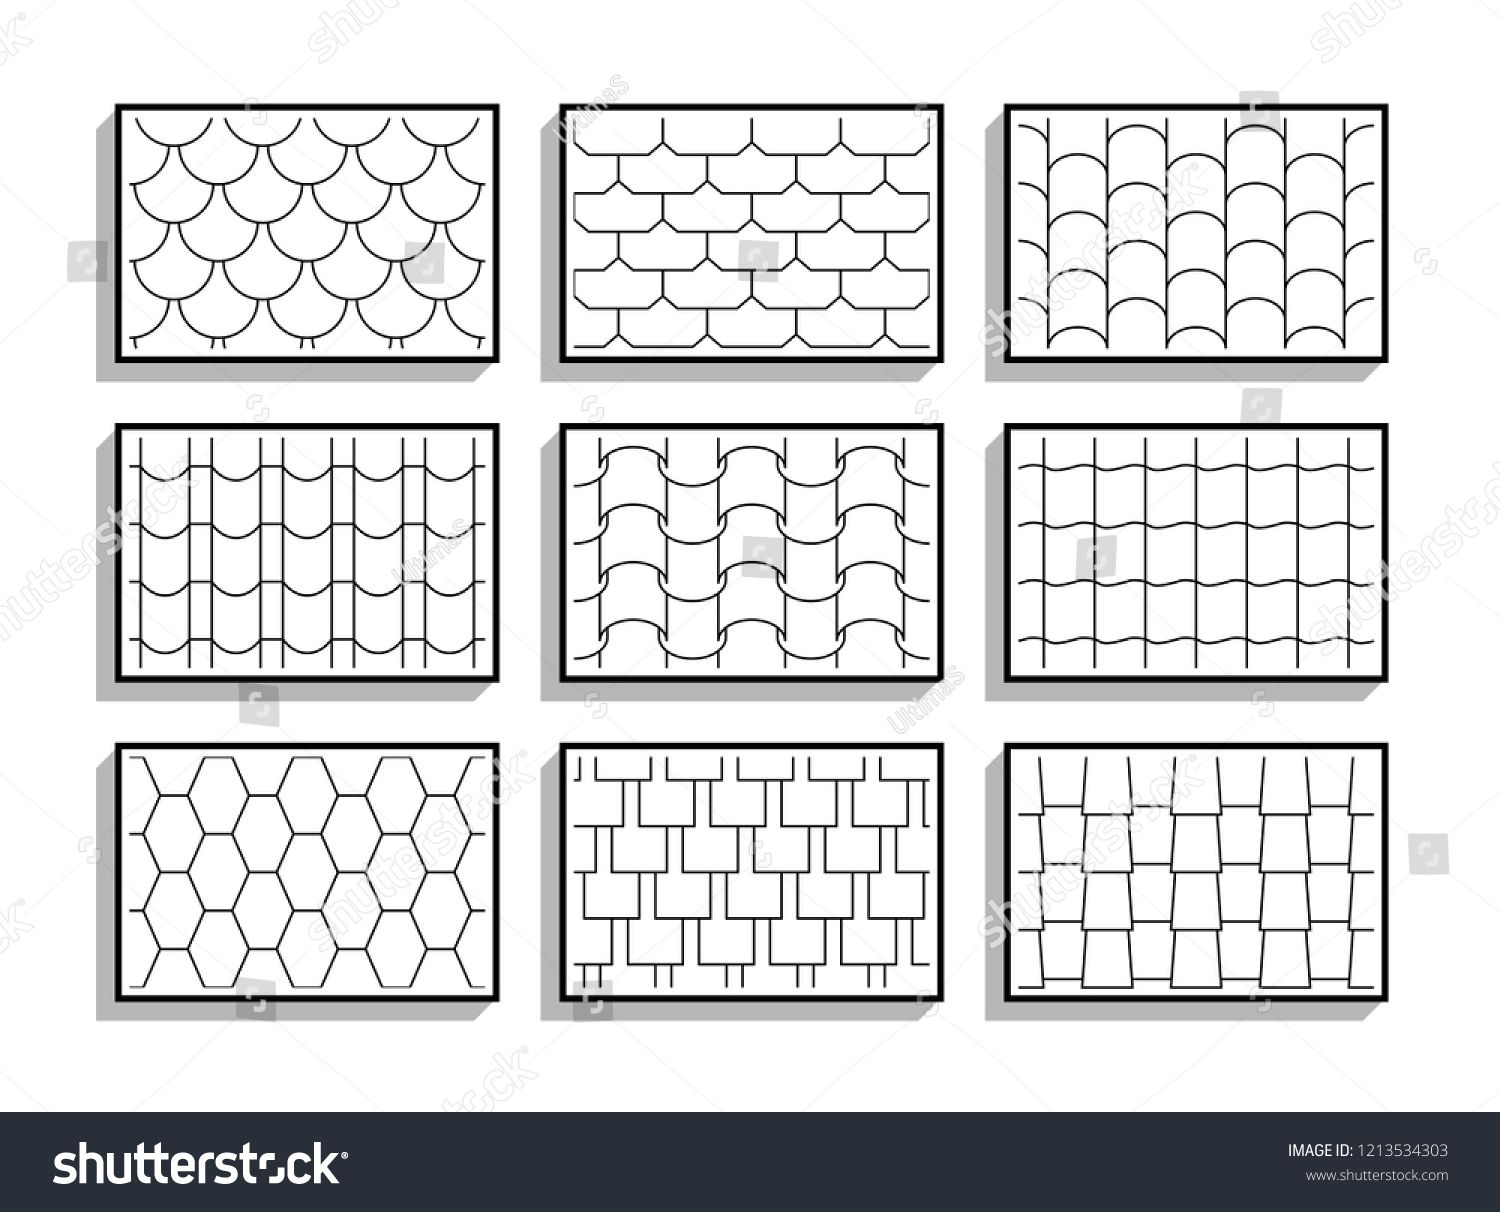 Set Of Seamless Roof Tiles Textures Black And White Graphic Patterns Of Architectural Materialstiles Textu Roof Tiles Architectural Materials Graphic Patterns